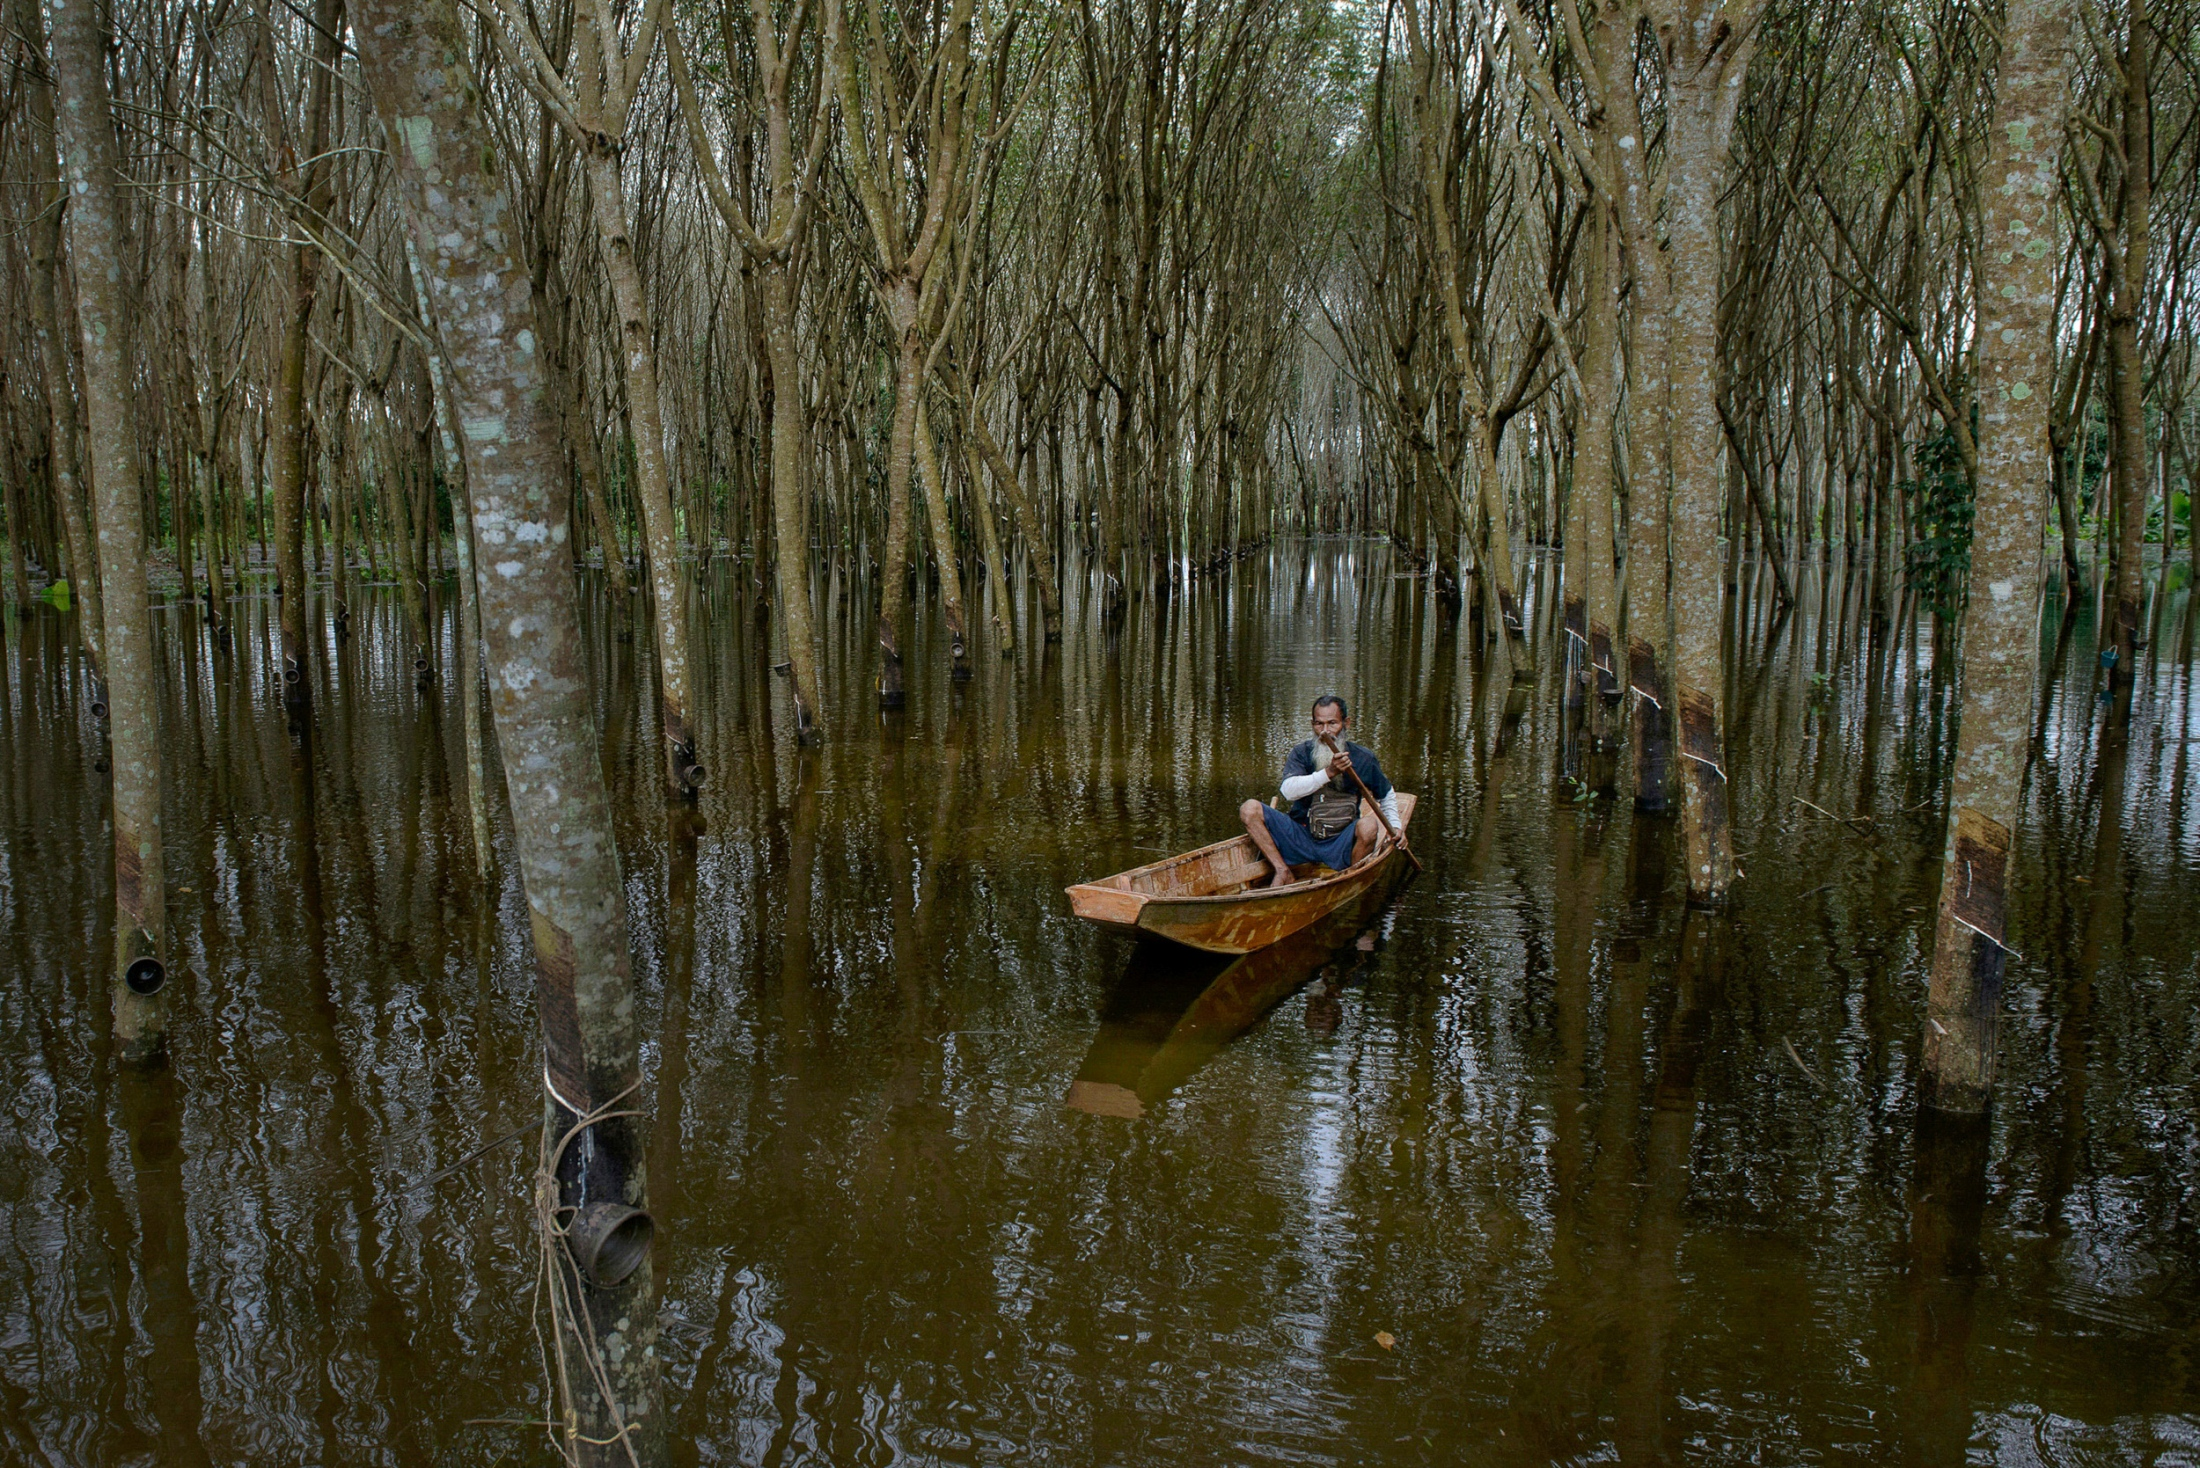 Unseasonably heavy rainfall in Southern Thailand causing widespread flooding, a farmer paddles his way through rubber tree plantations, the economic plant which is the main income to farmers in Southern Thailand.